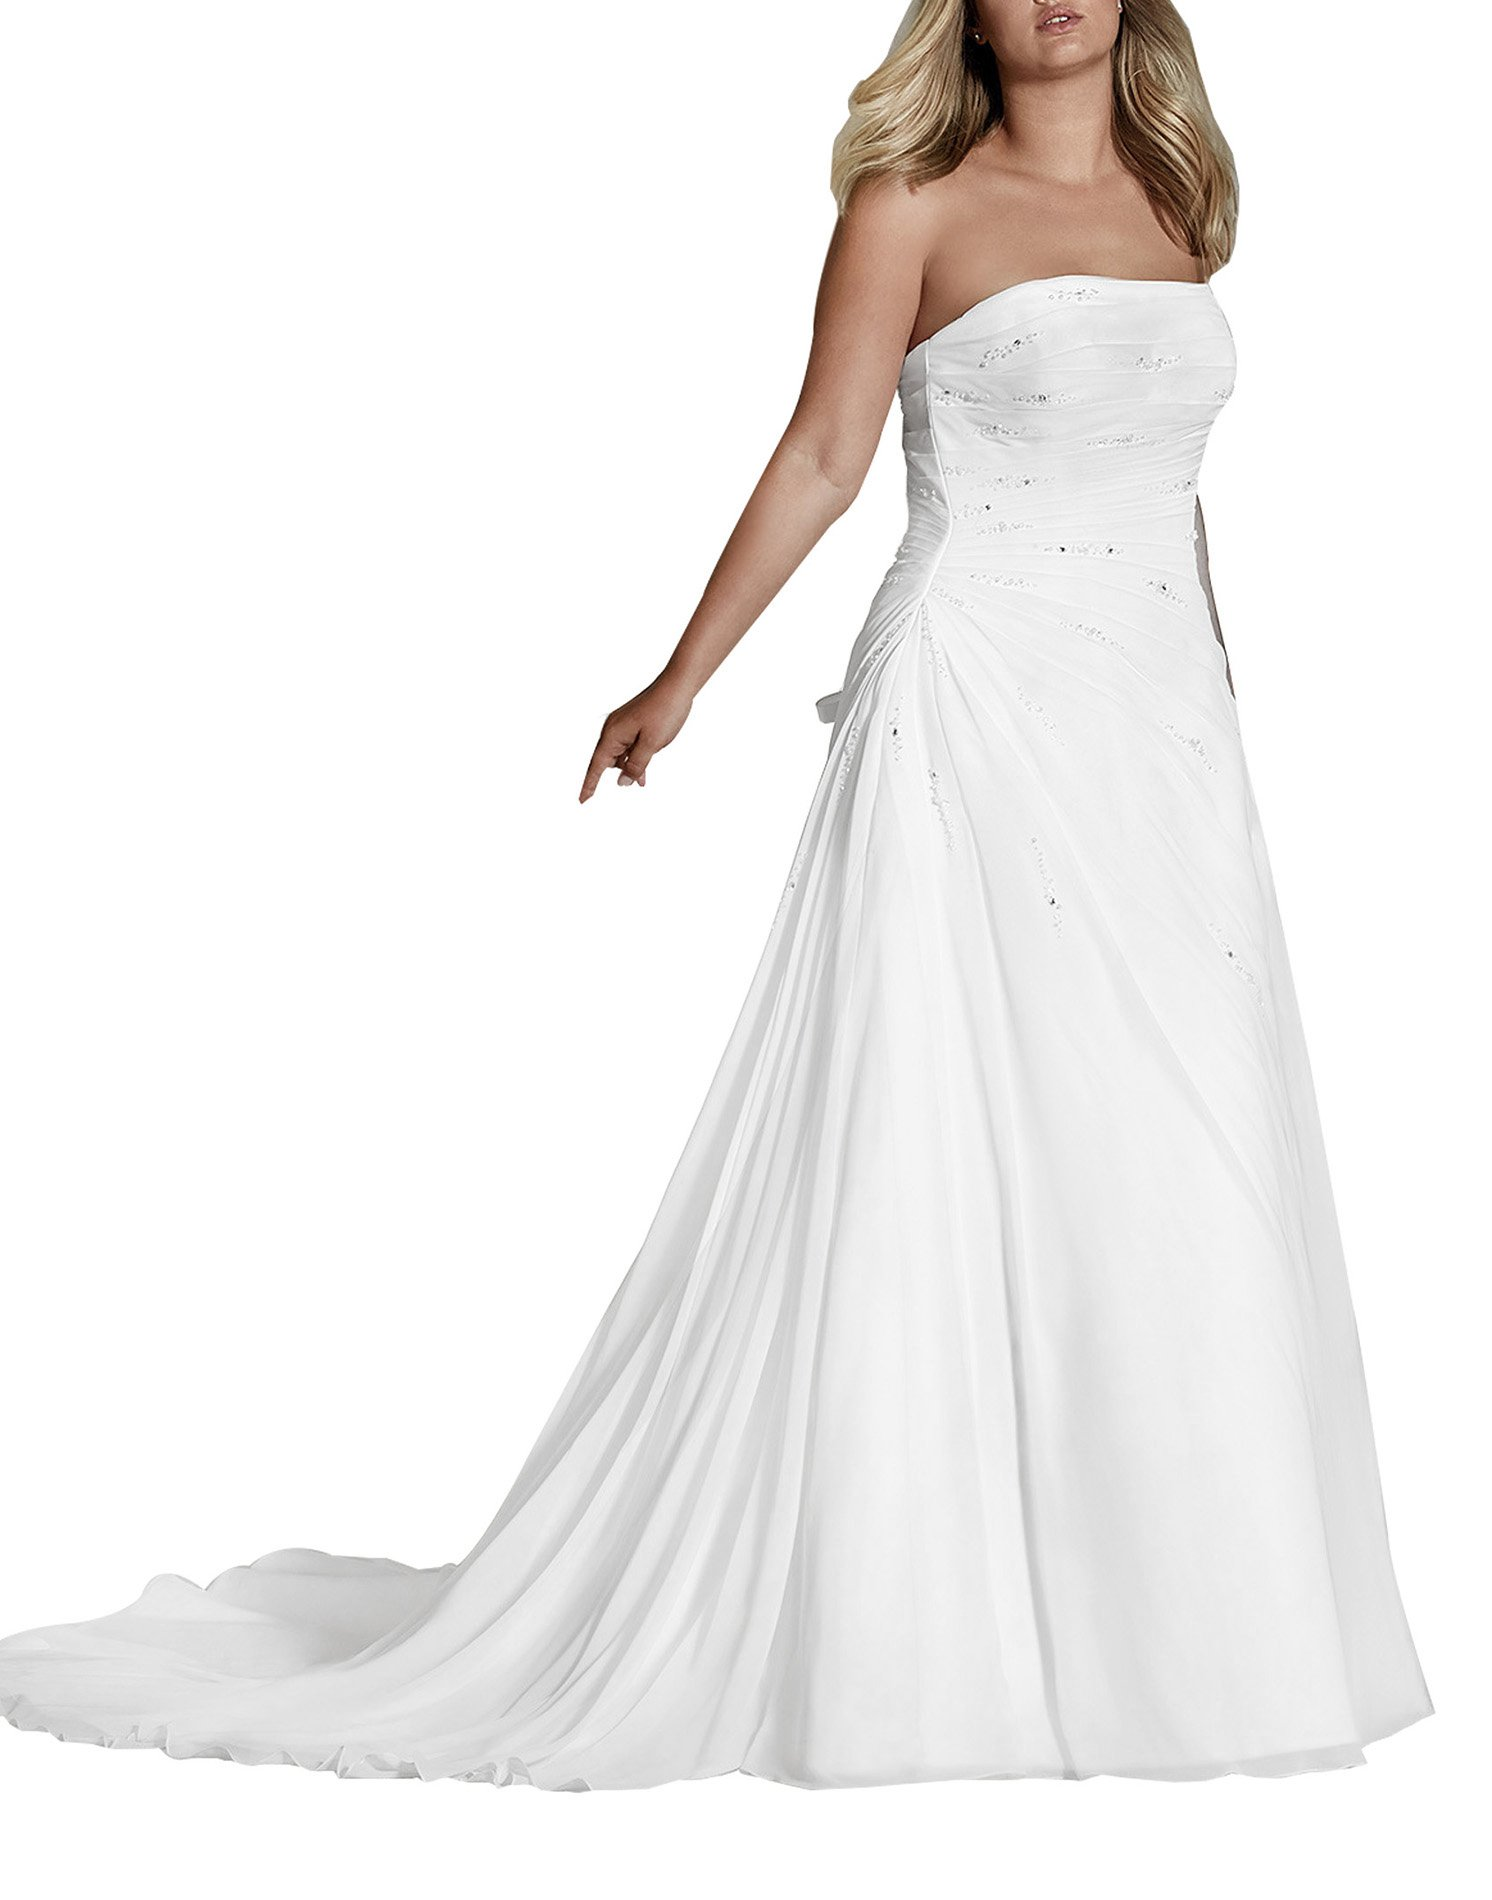 Women's Elegant A Line Strapless Lace Up Extra Large Wedding Dresses Bridal Gown White Size 16